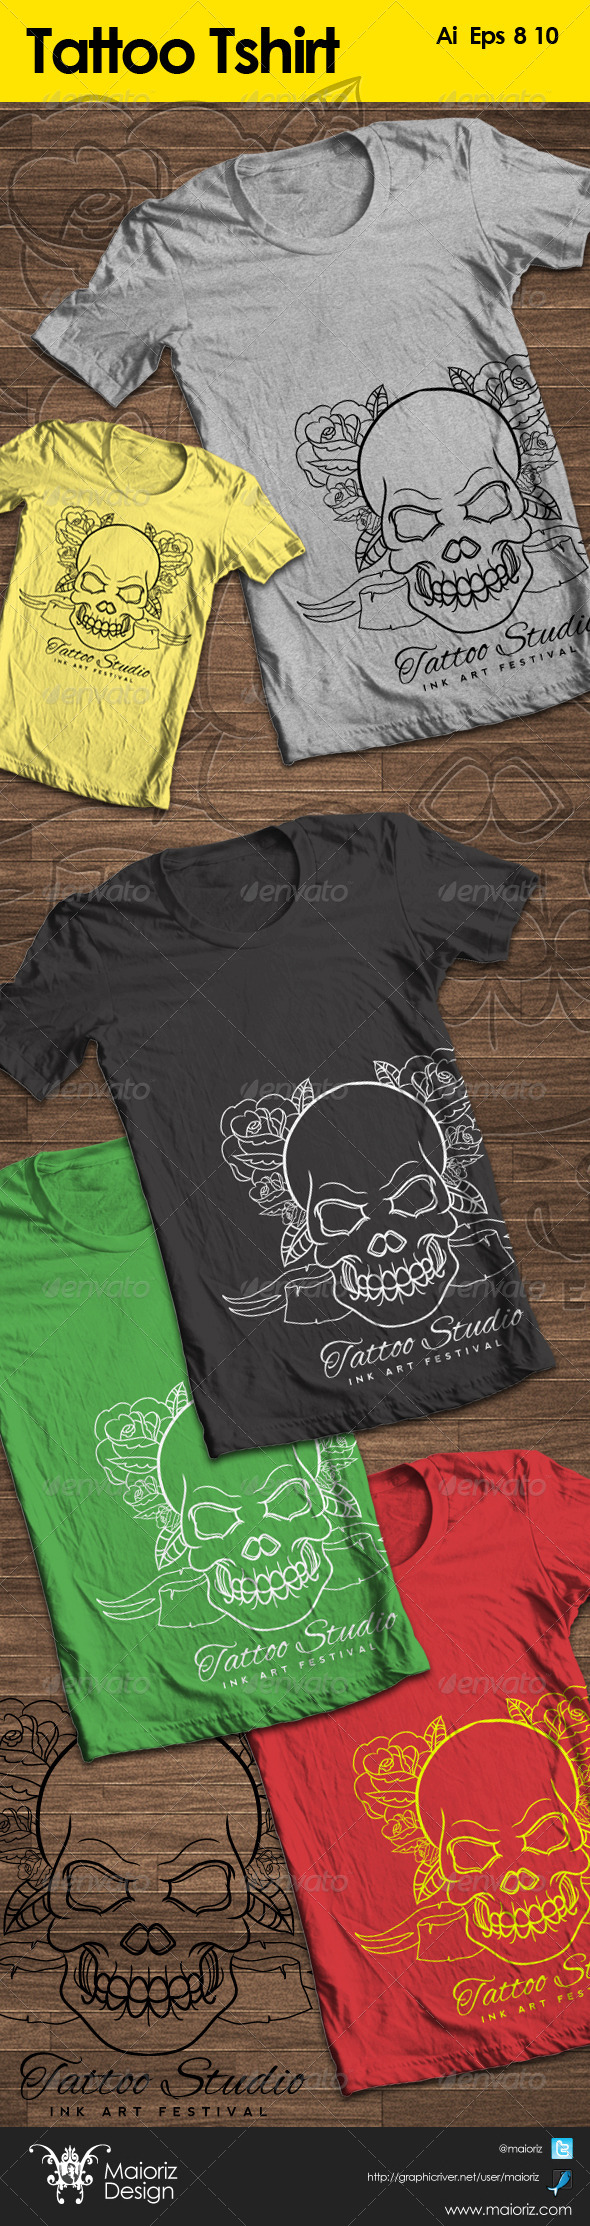 Tattoo Tshirt Promote - Business T-Shirts